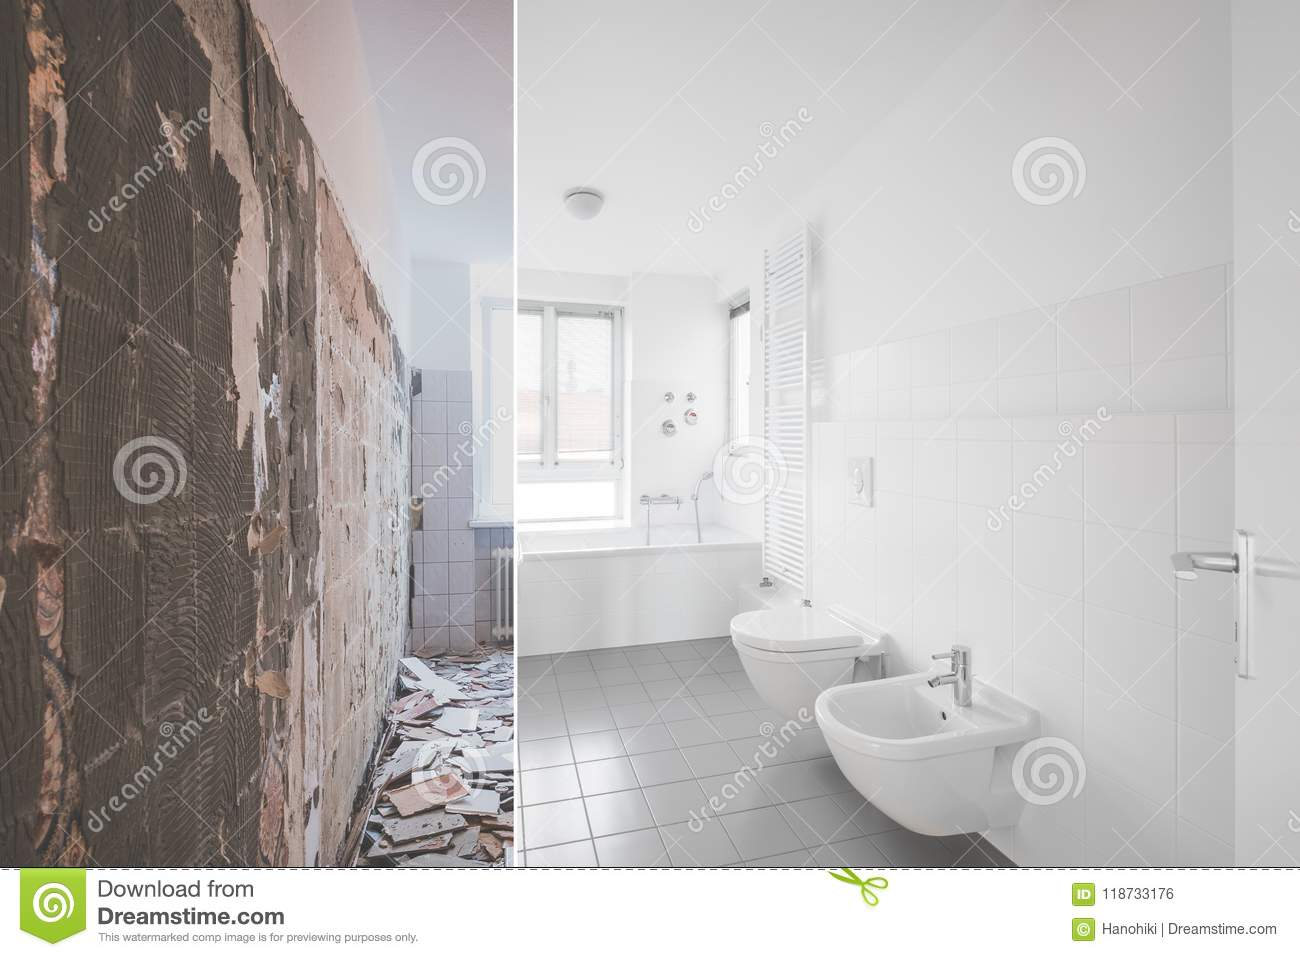 Tiled Bathroom Renovation - Before And After Restoration Stock Photo ...